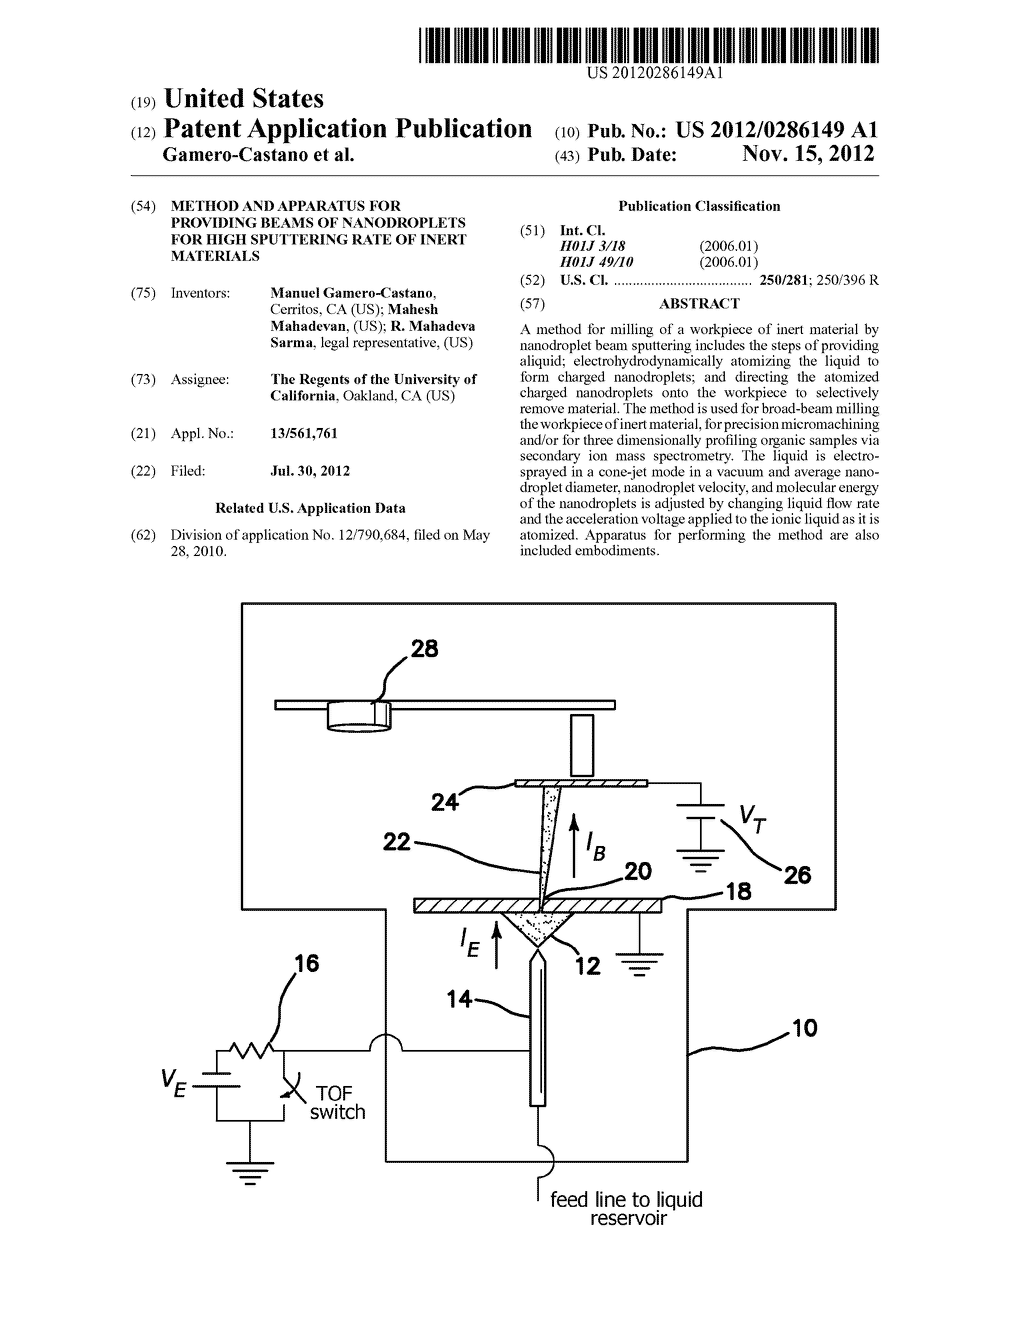 METHOD AND APPARATUS FOR PROVIDING BEAMS OF NANODROPLETS FOR HIGH     SPUTTERING RATE OF INERT MATERIALS - diagram, schematic, and image 01